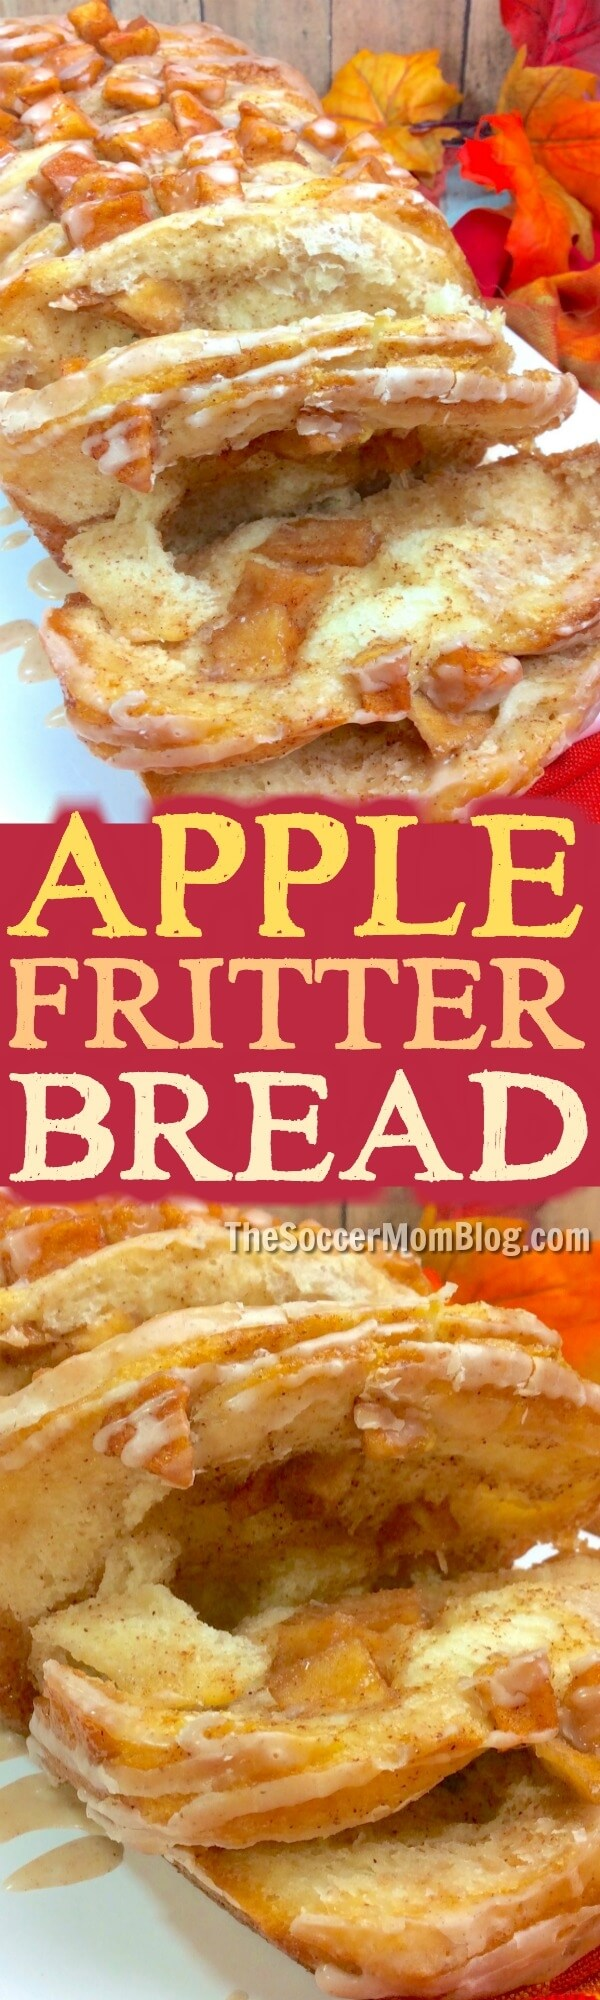 A crave-able and share-able Country Apple Fritter Bread that is just the thing for Fall! Layers of sweet apples sandwiched between buttery biscuit dough.